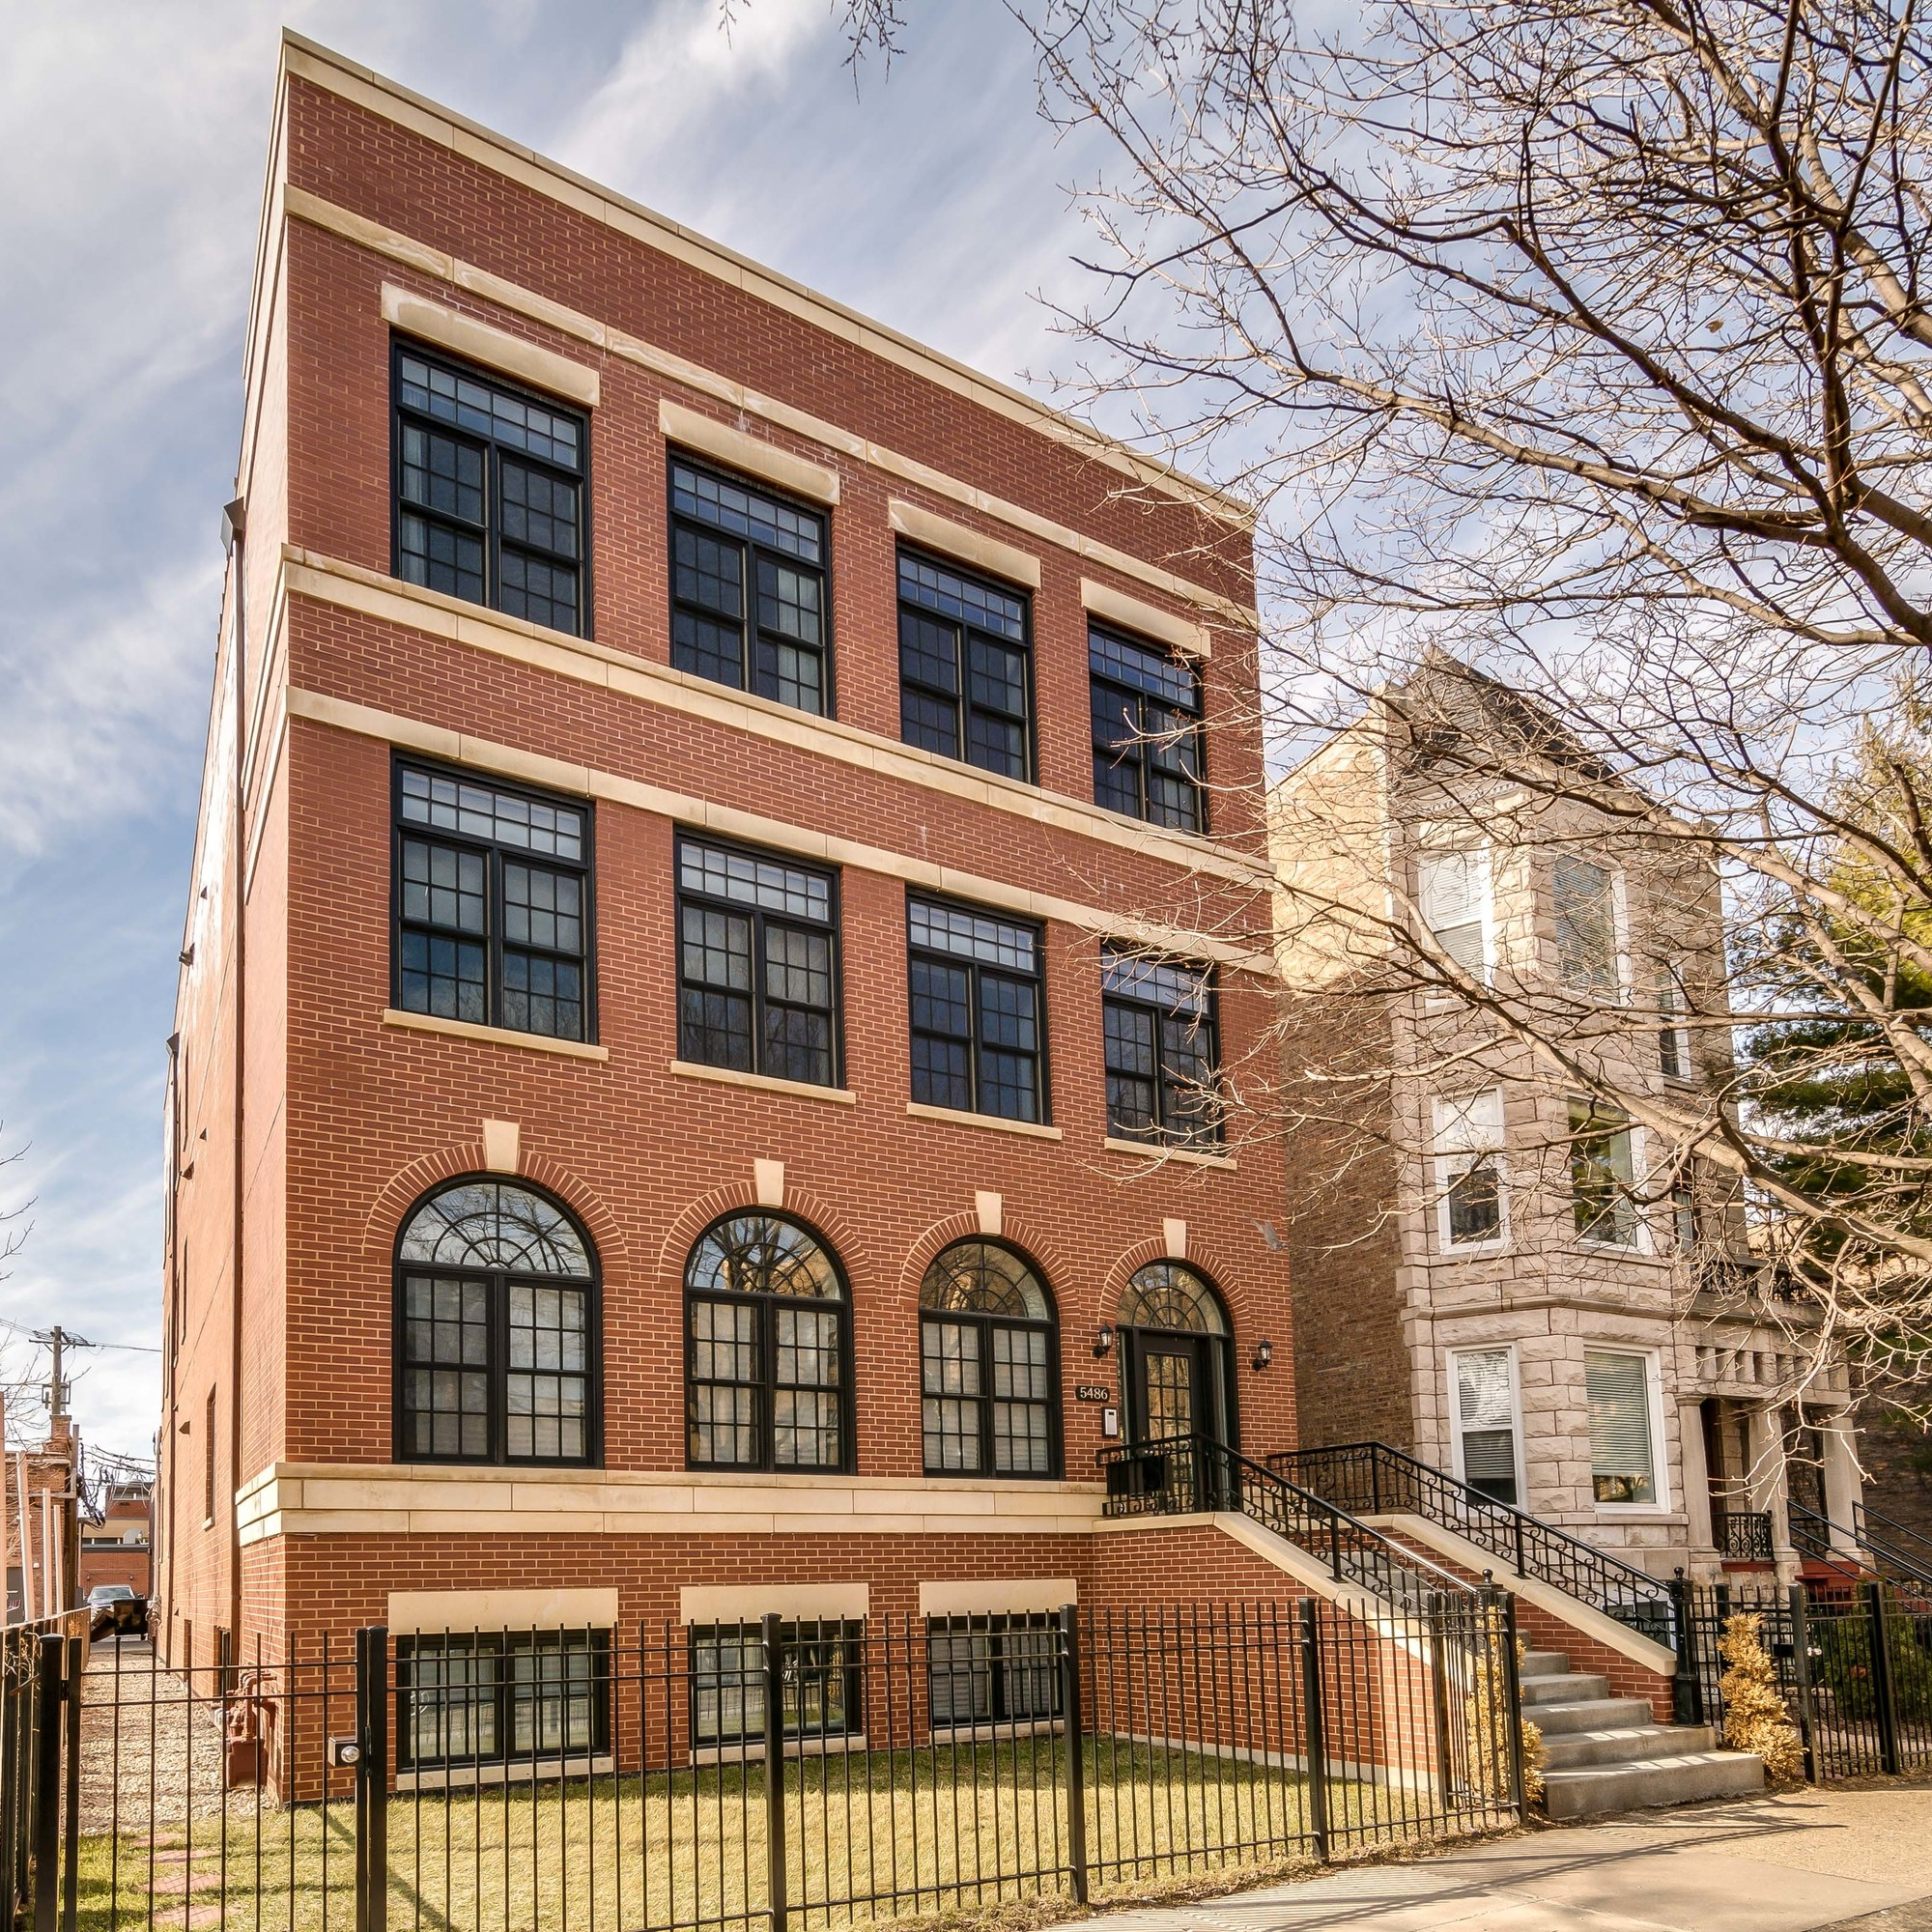 5486 S Woodlawn_001.jpg